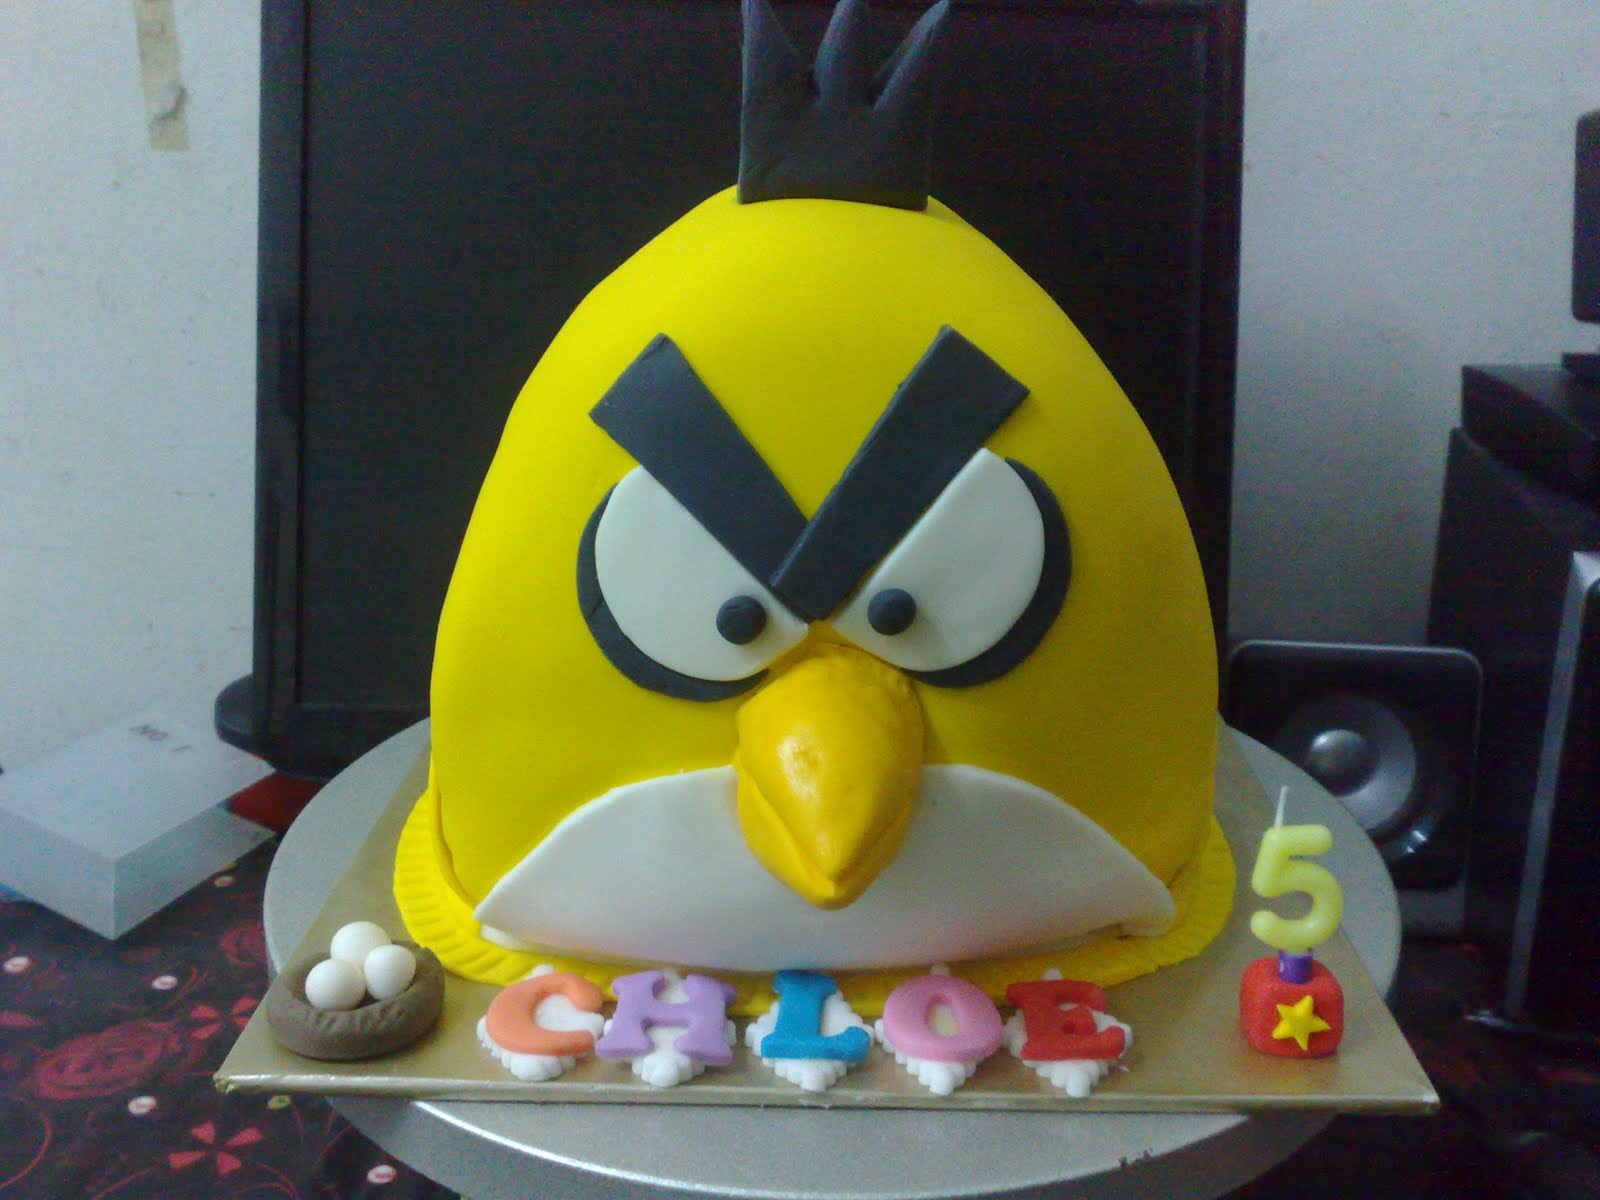 3D YELLOW ANGRY BIRD CAKE WITH FONDANT ICING Cust Ms Esther Lee This Was A Second Order From For Her Adorable Daughter Chloe